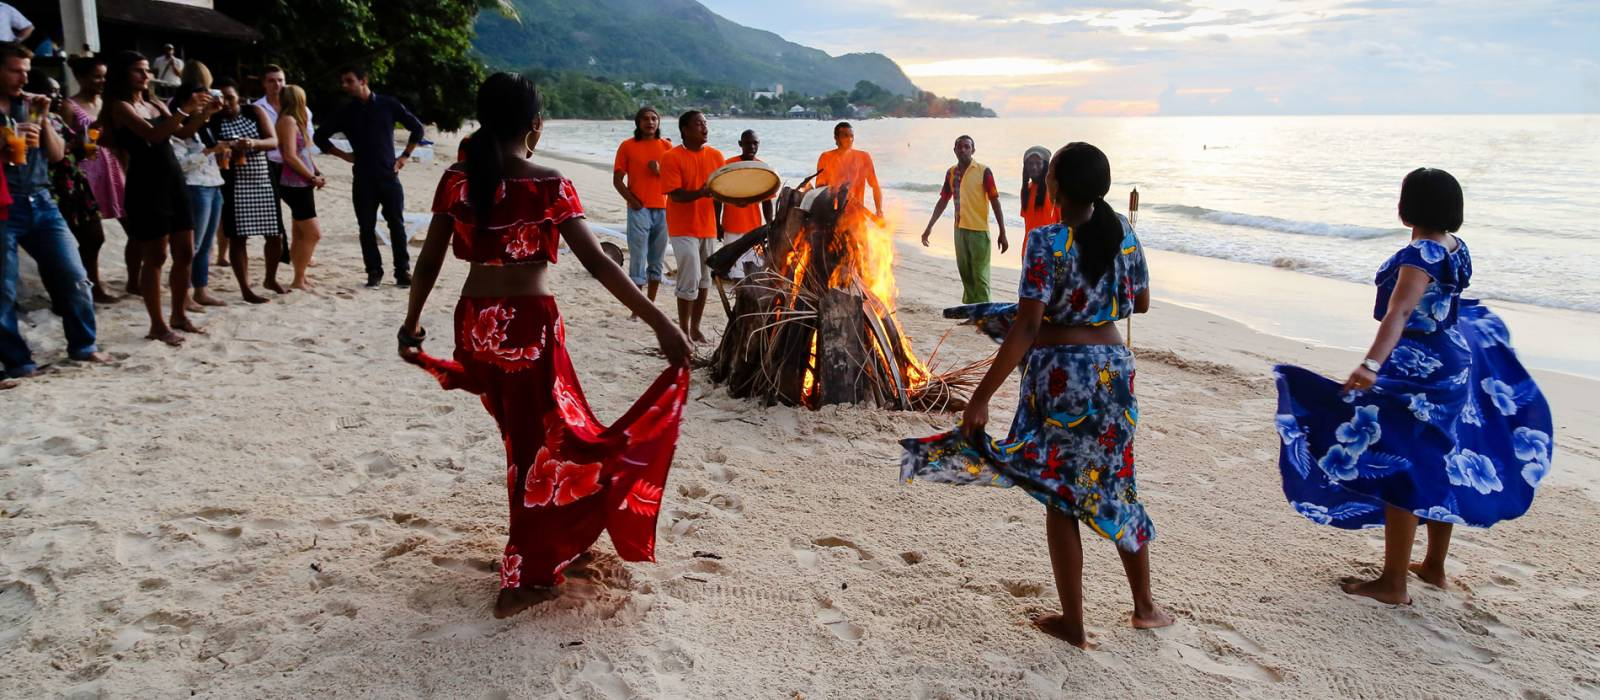 Beachside revelers in Mahe island, Seychelles - Seychelles Travel Guide - culture of Seychelles